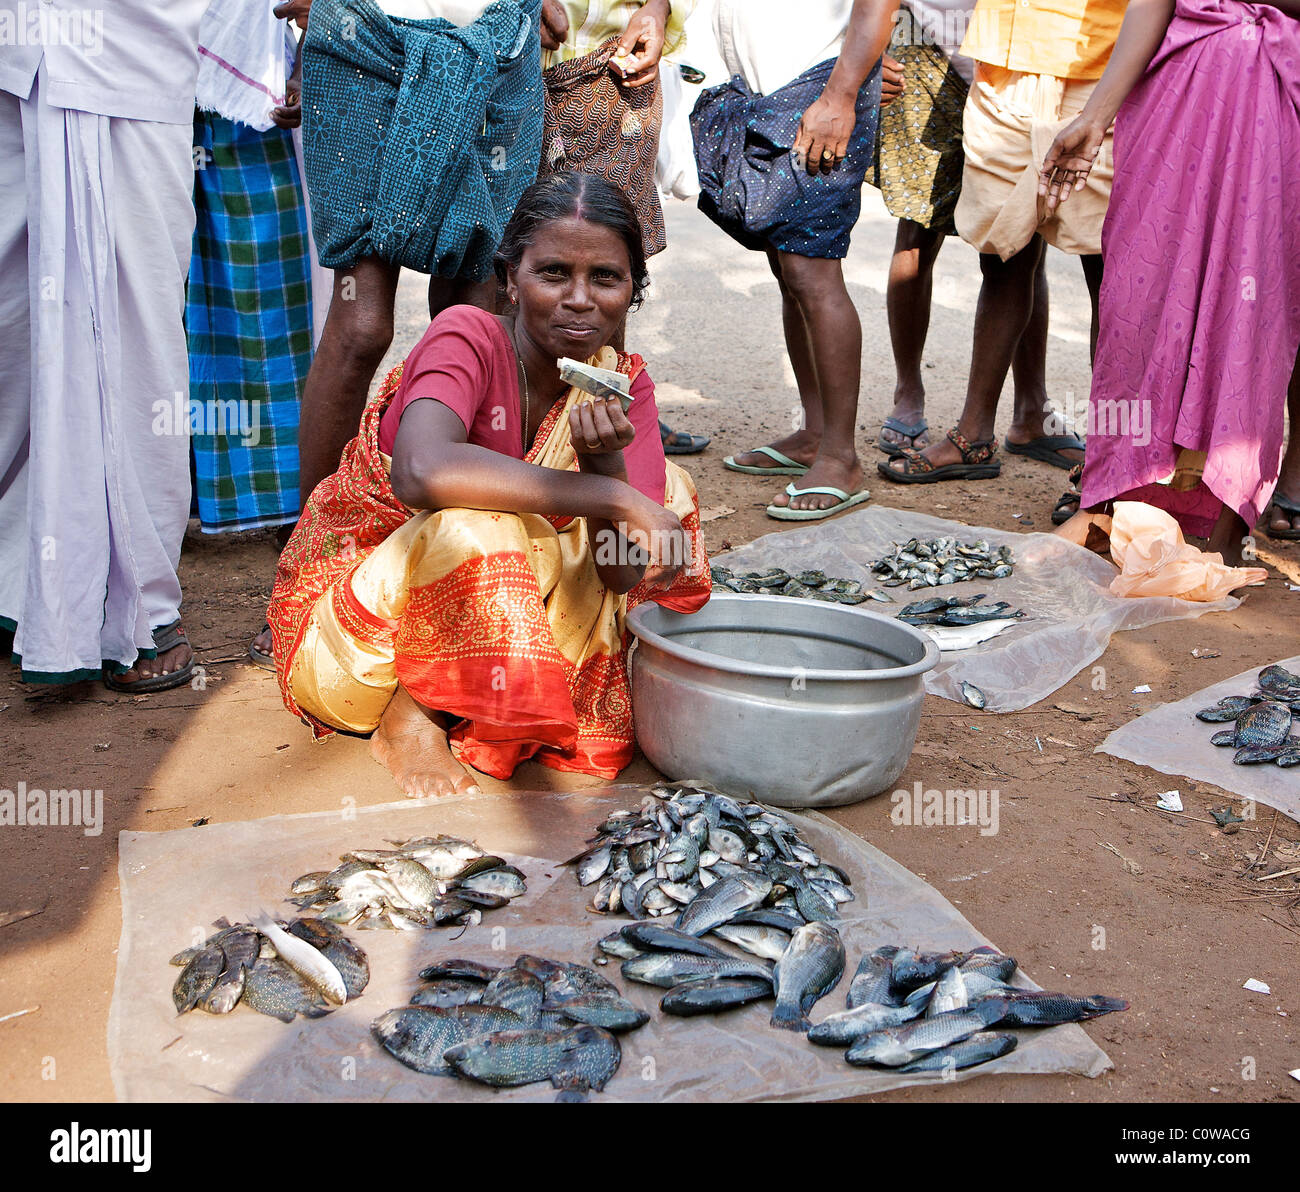 Keralite women wait to sell their fish at a roadside fish market in the Backwaters, Kochi, Kerala, India - Stock Image